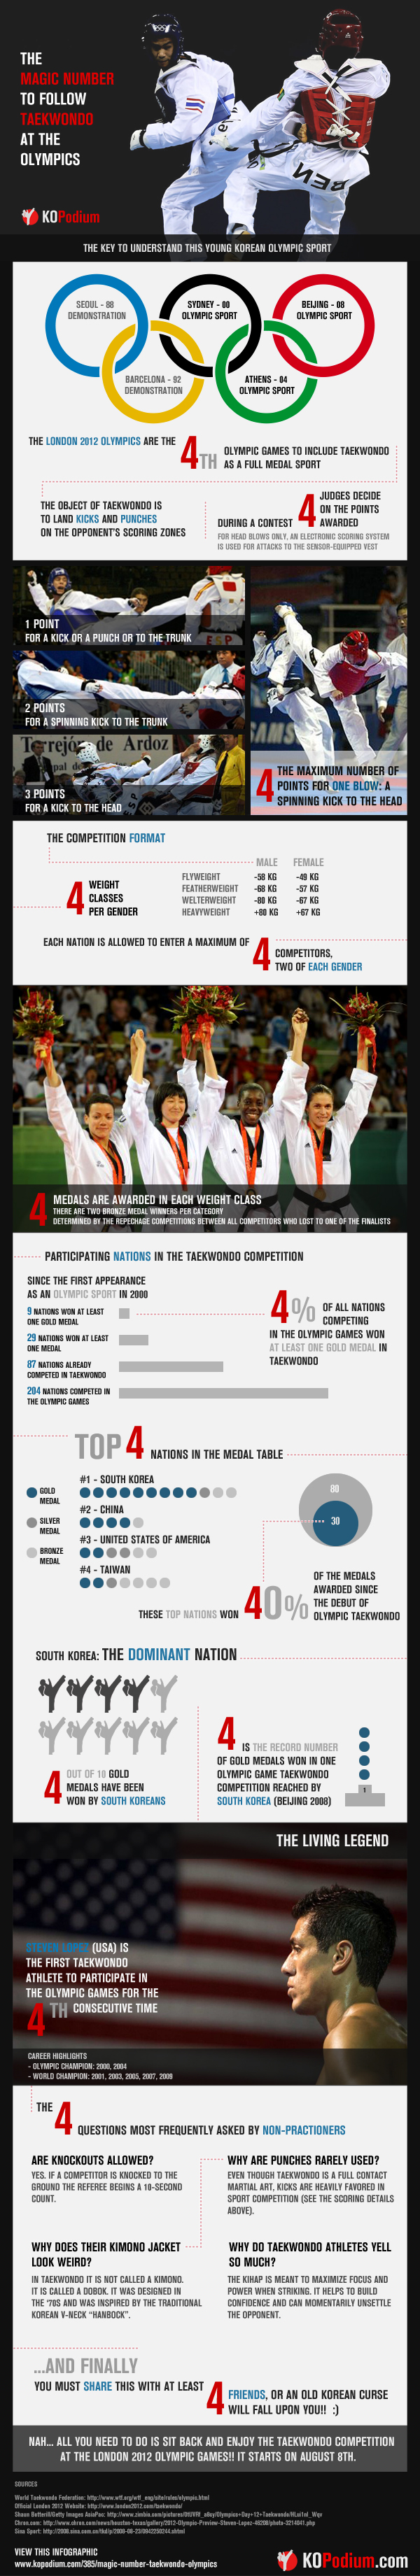 19. The Magic Number To Follow Taekwondo At The Olympics